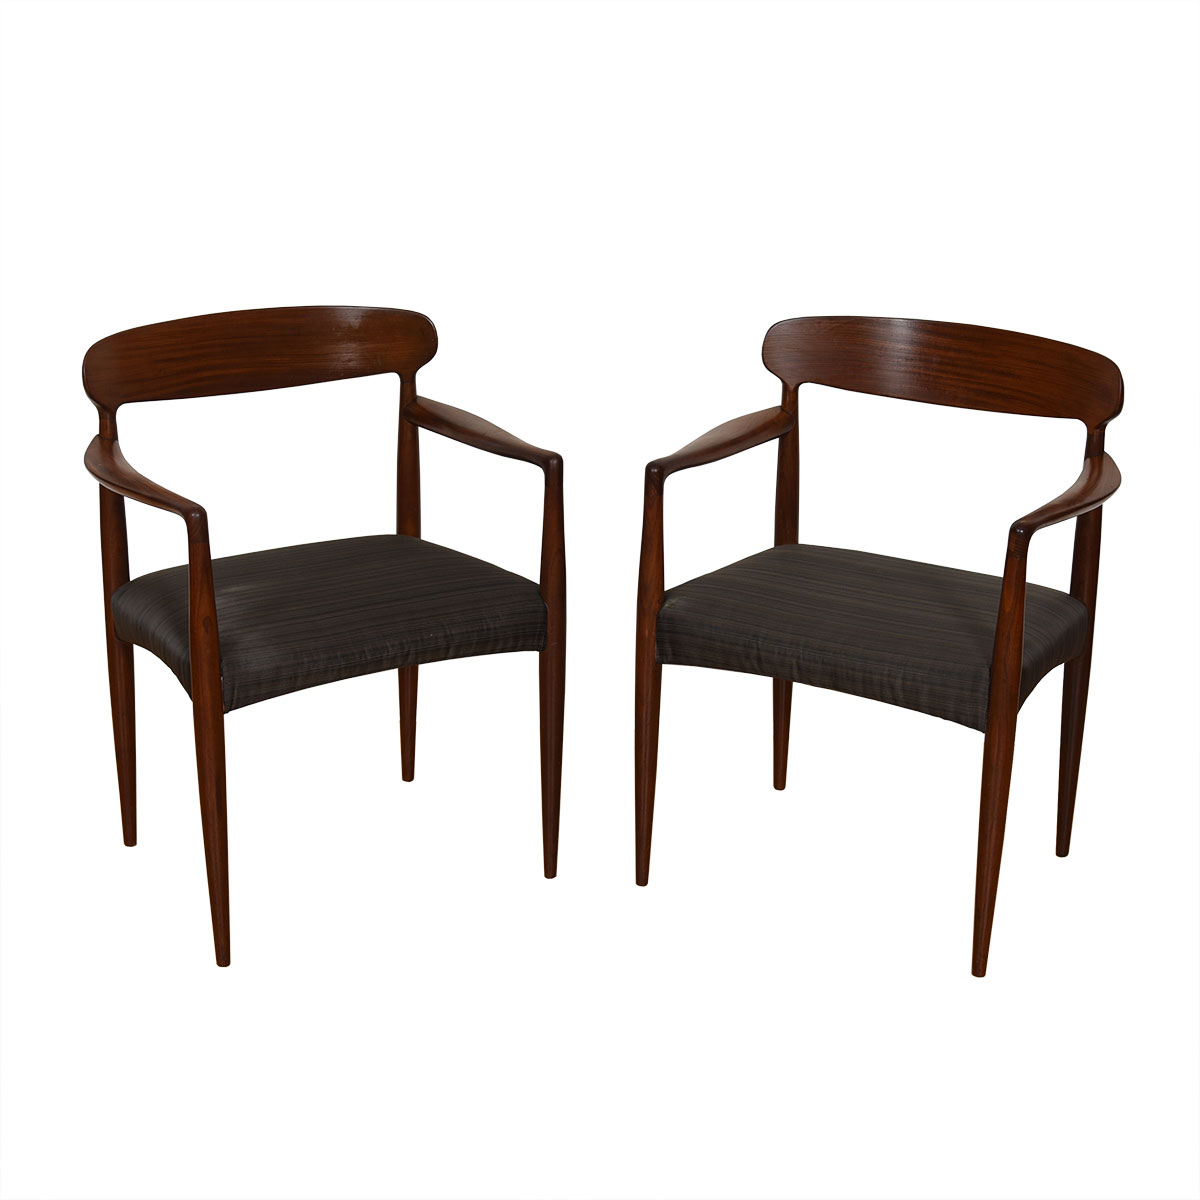 Pair of Danish Modern Upholstered Arm Chairs